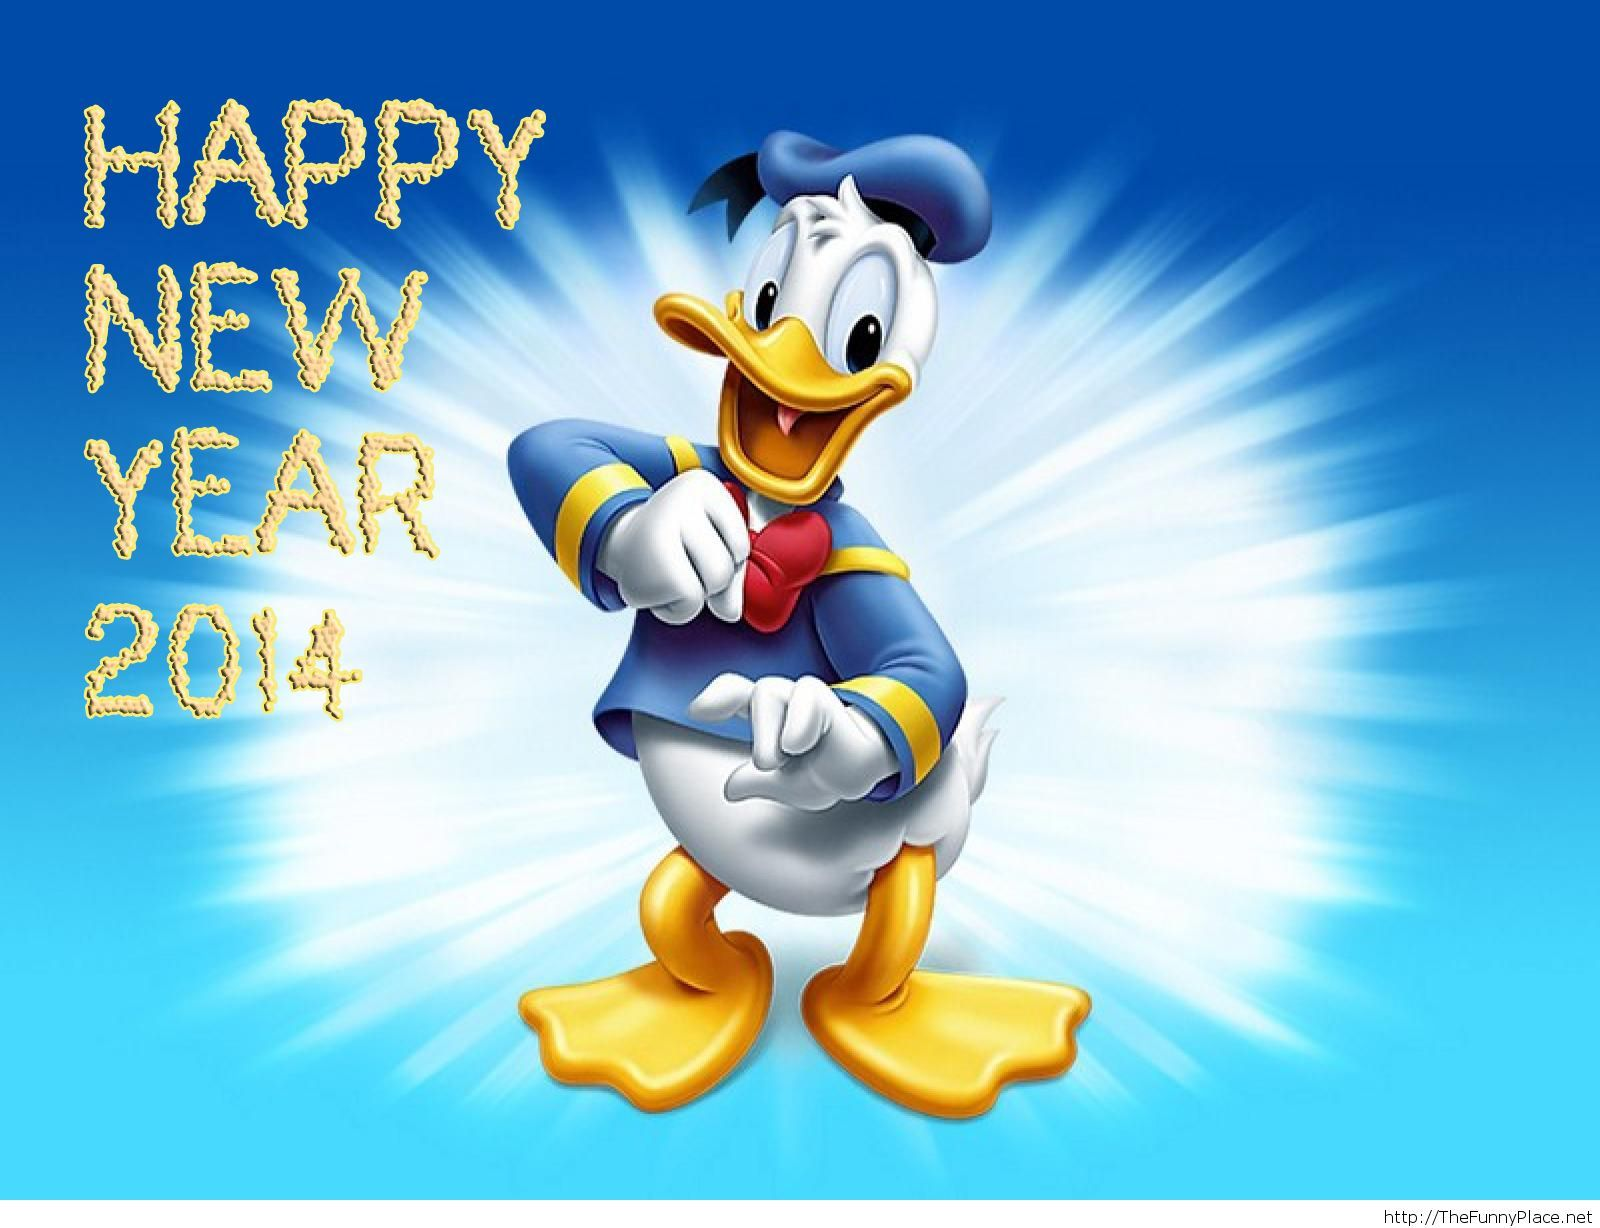 Happy new year 2014 cartoon wallpaper Funny